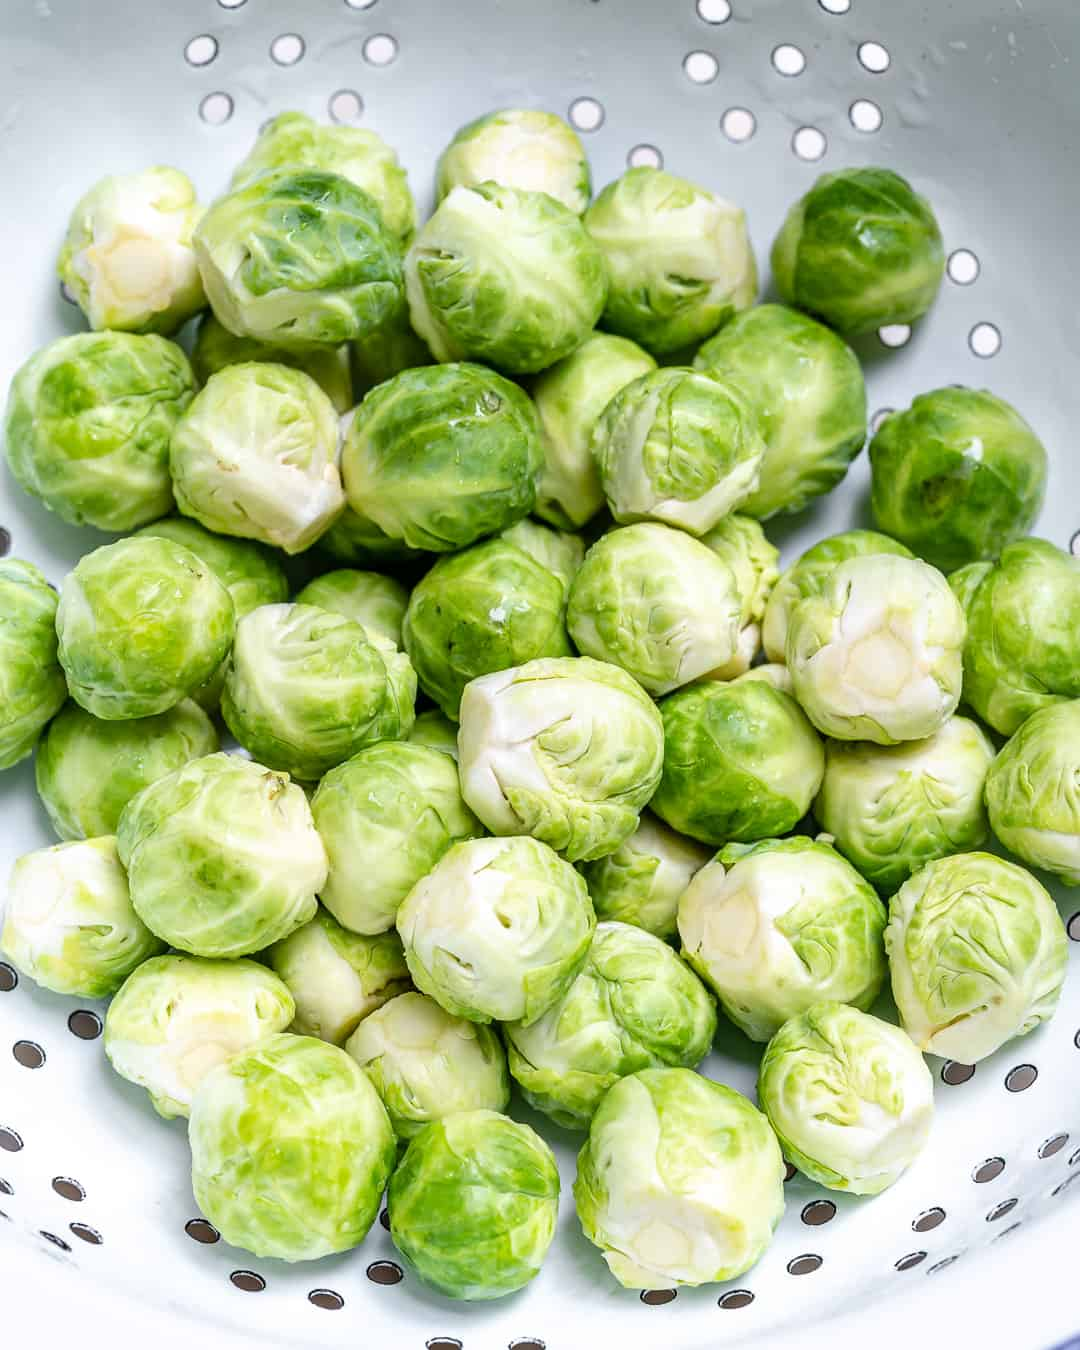 washed and cut up Brussel sprouts